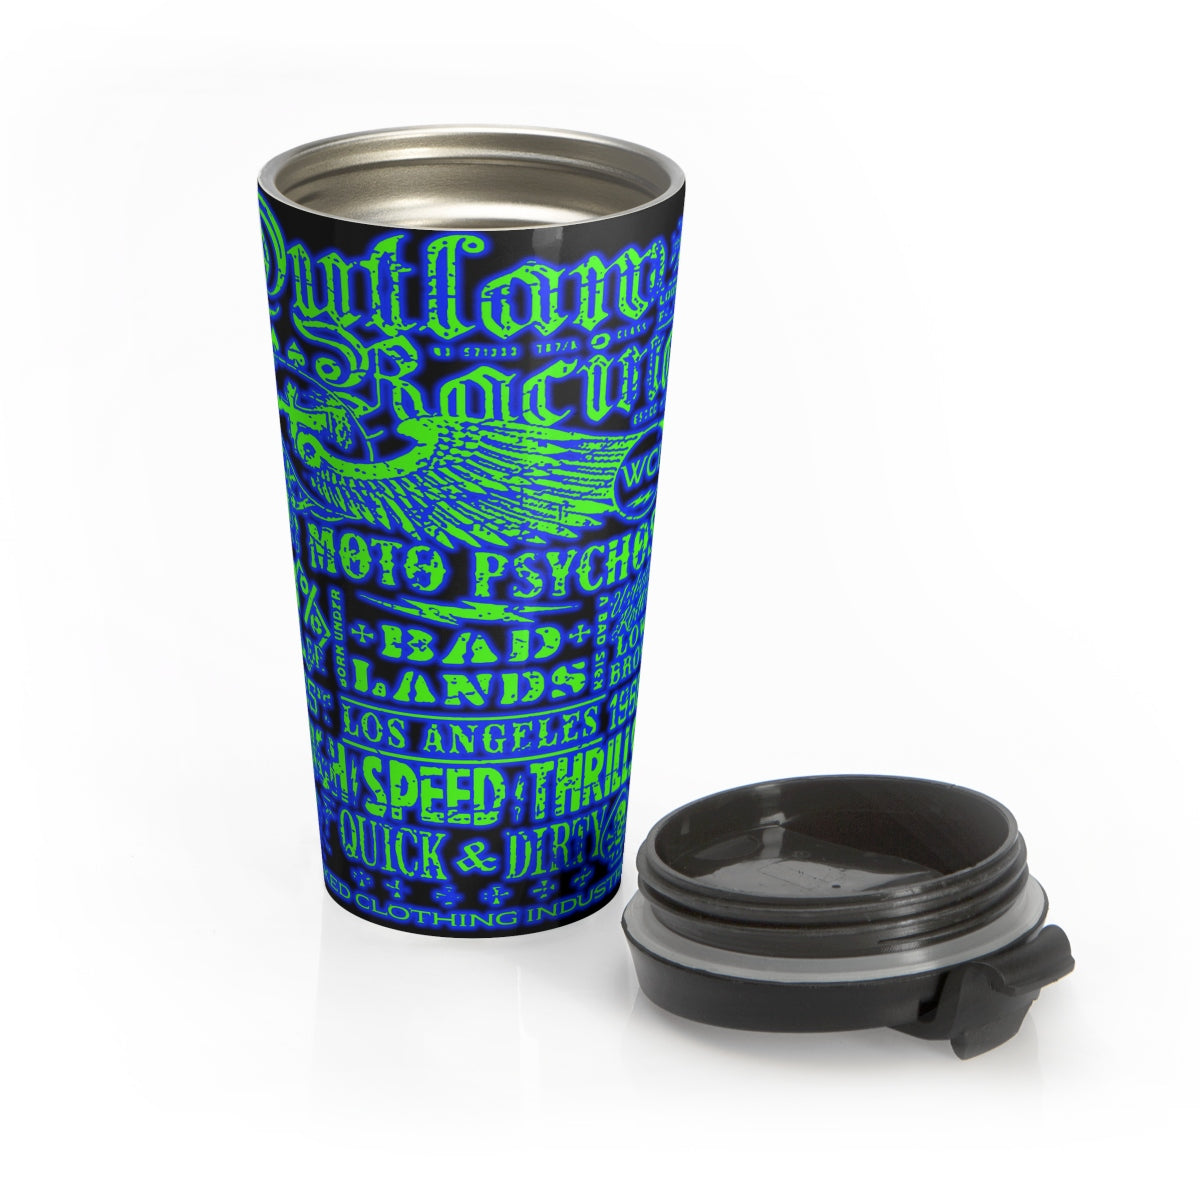 Outlaw Racing/ Blue/Green/Stainless Steel Travel Mug